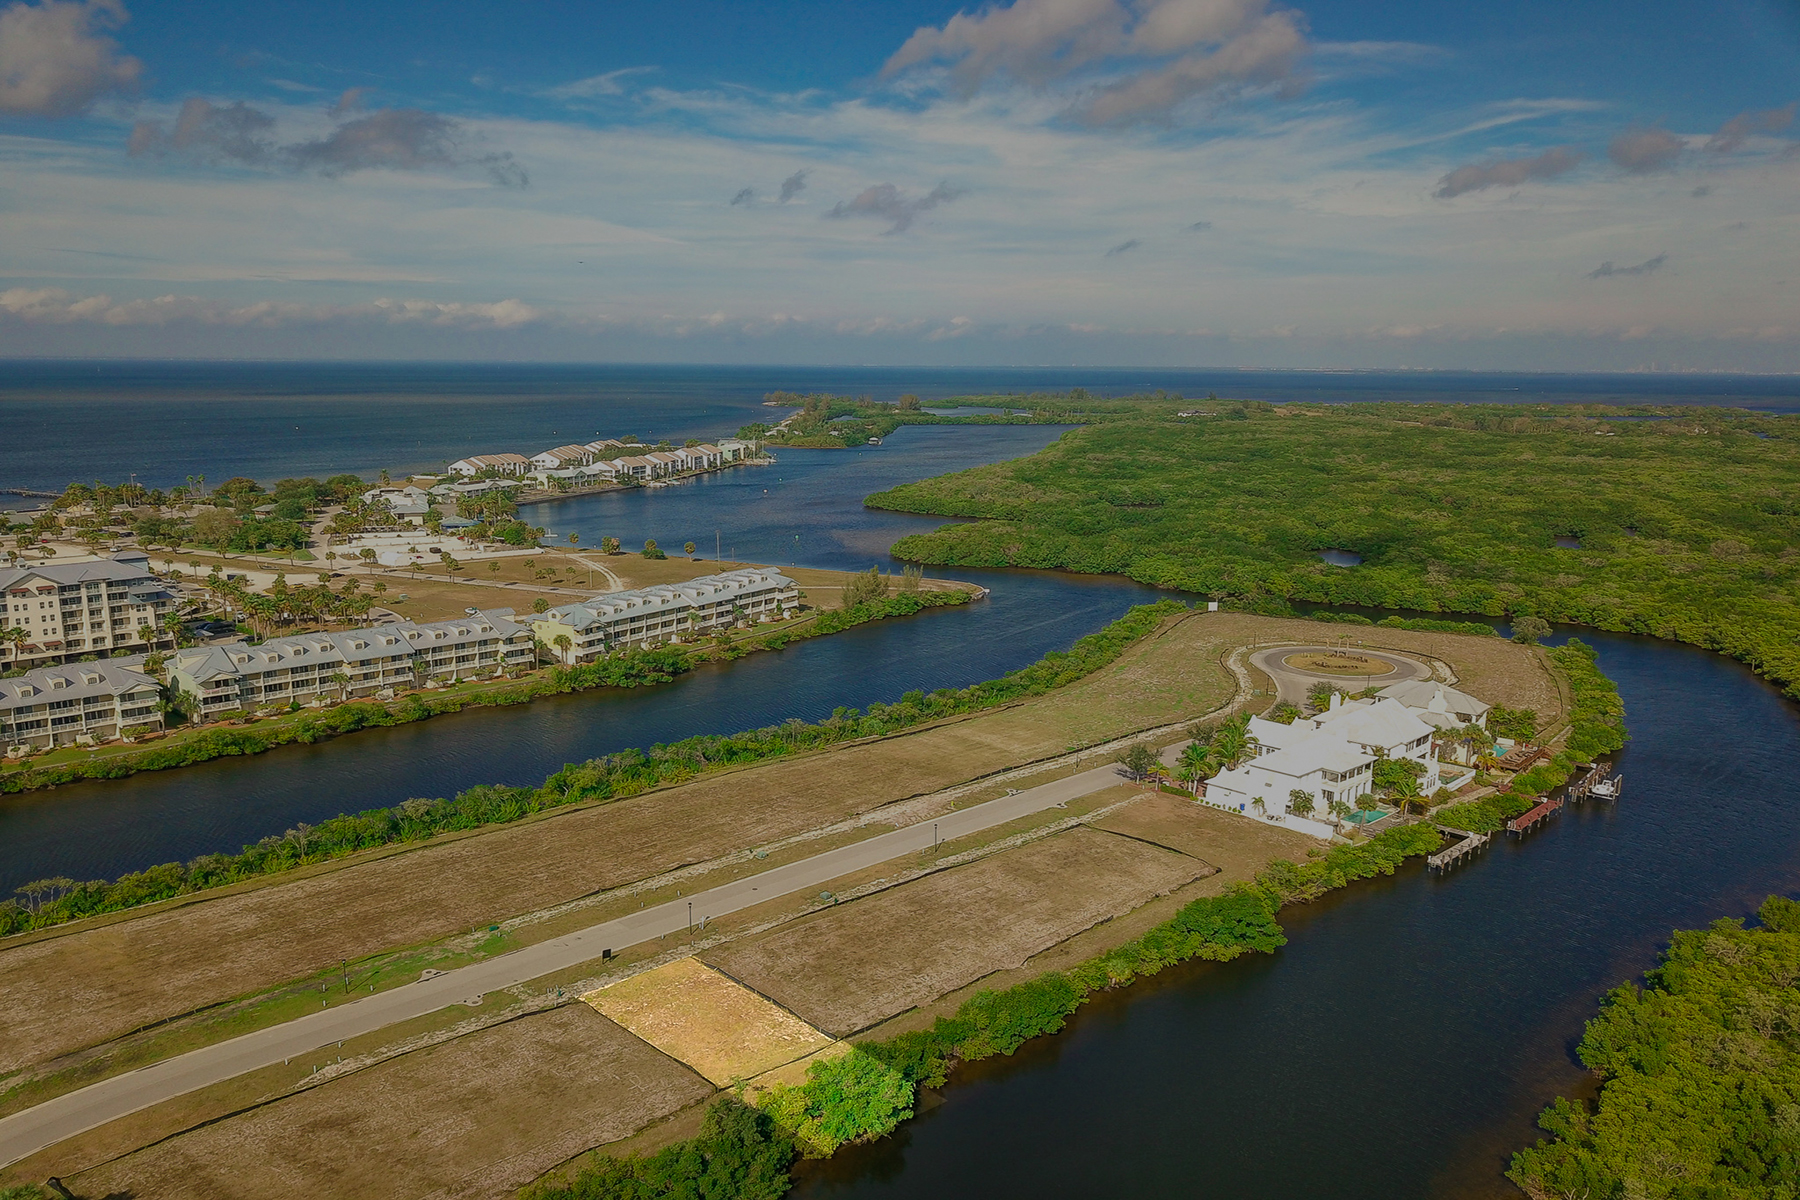 Land for Sale at RUSKIN 3113 Christophers Watch Ln 54 Ruskin, Florida 33570 United States